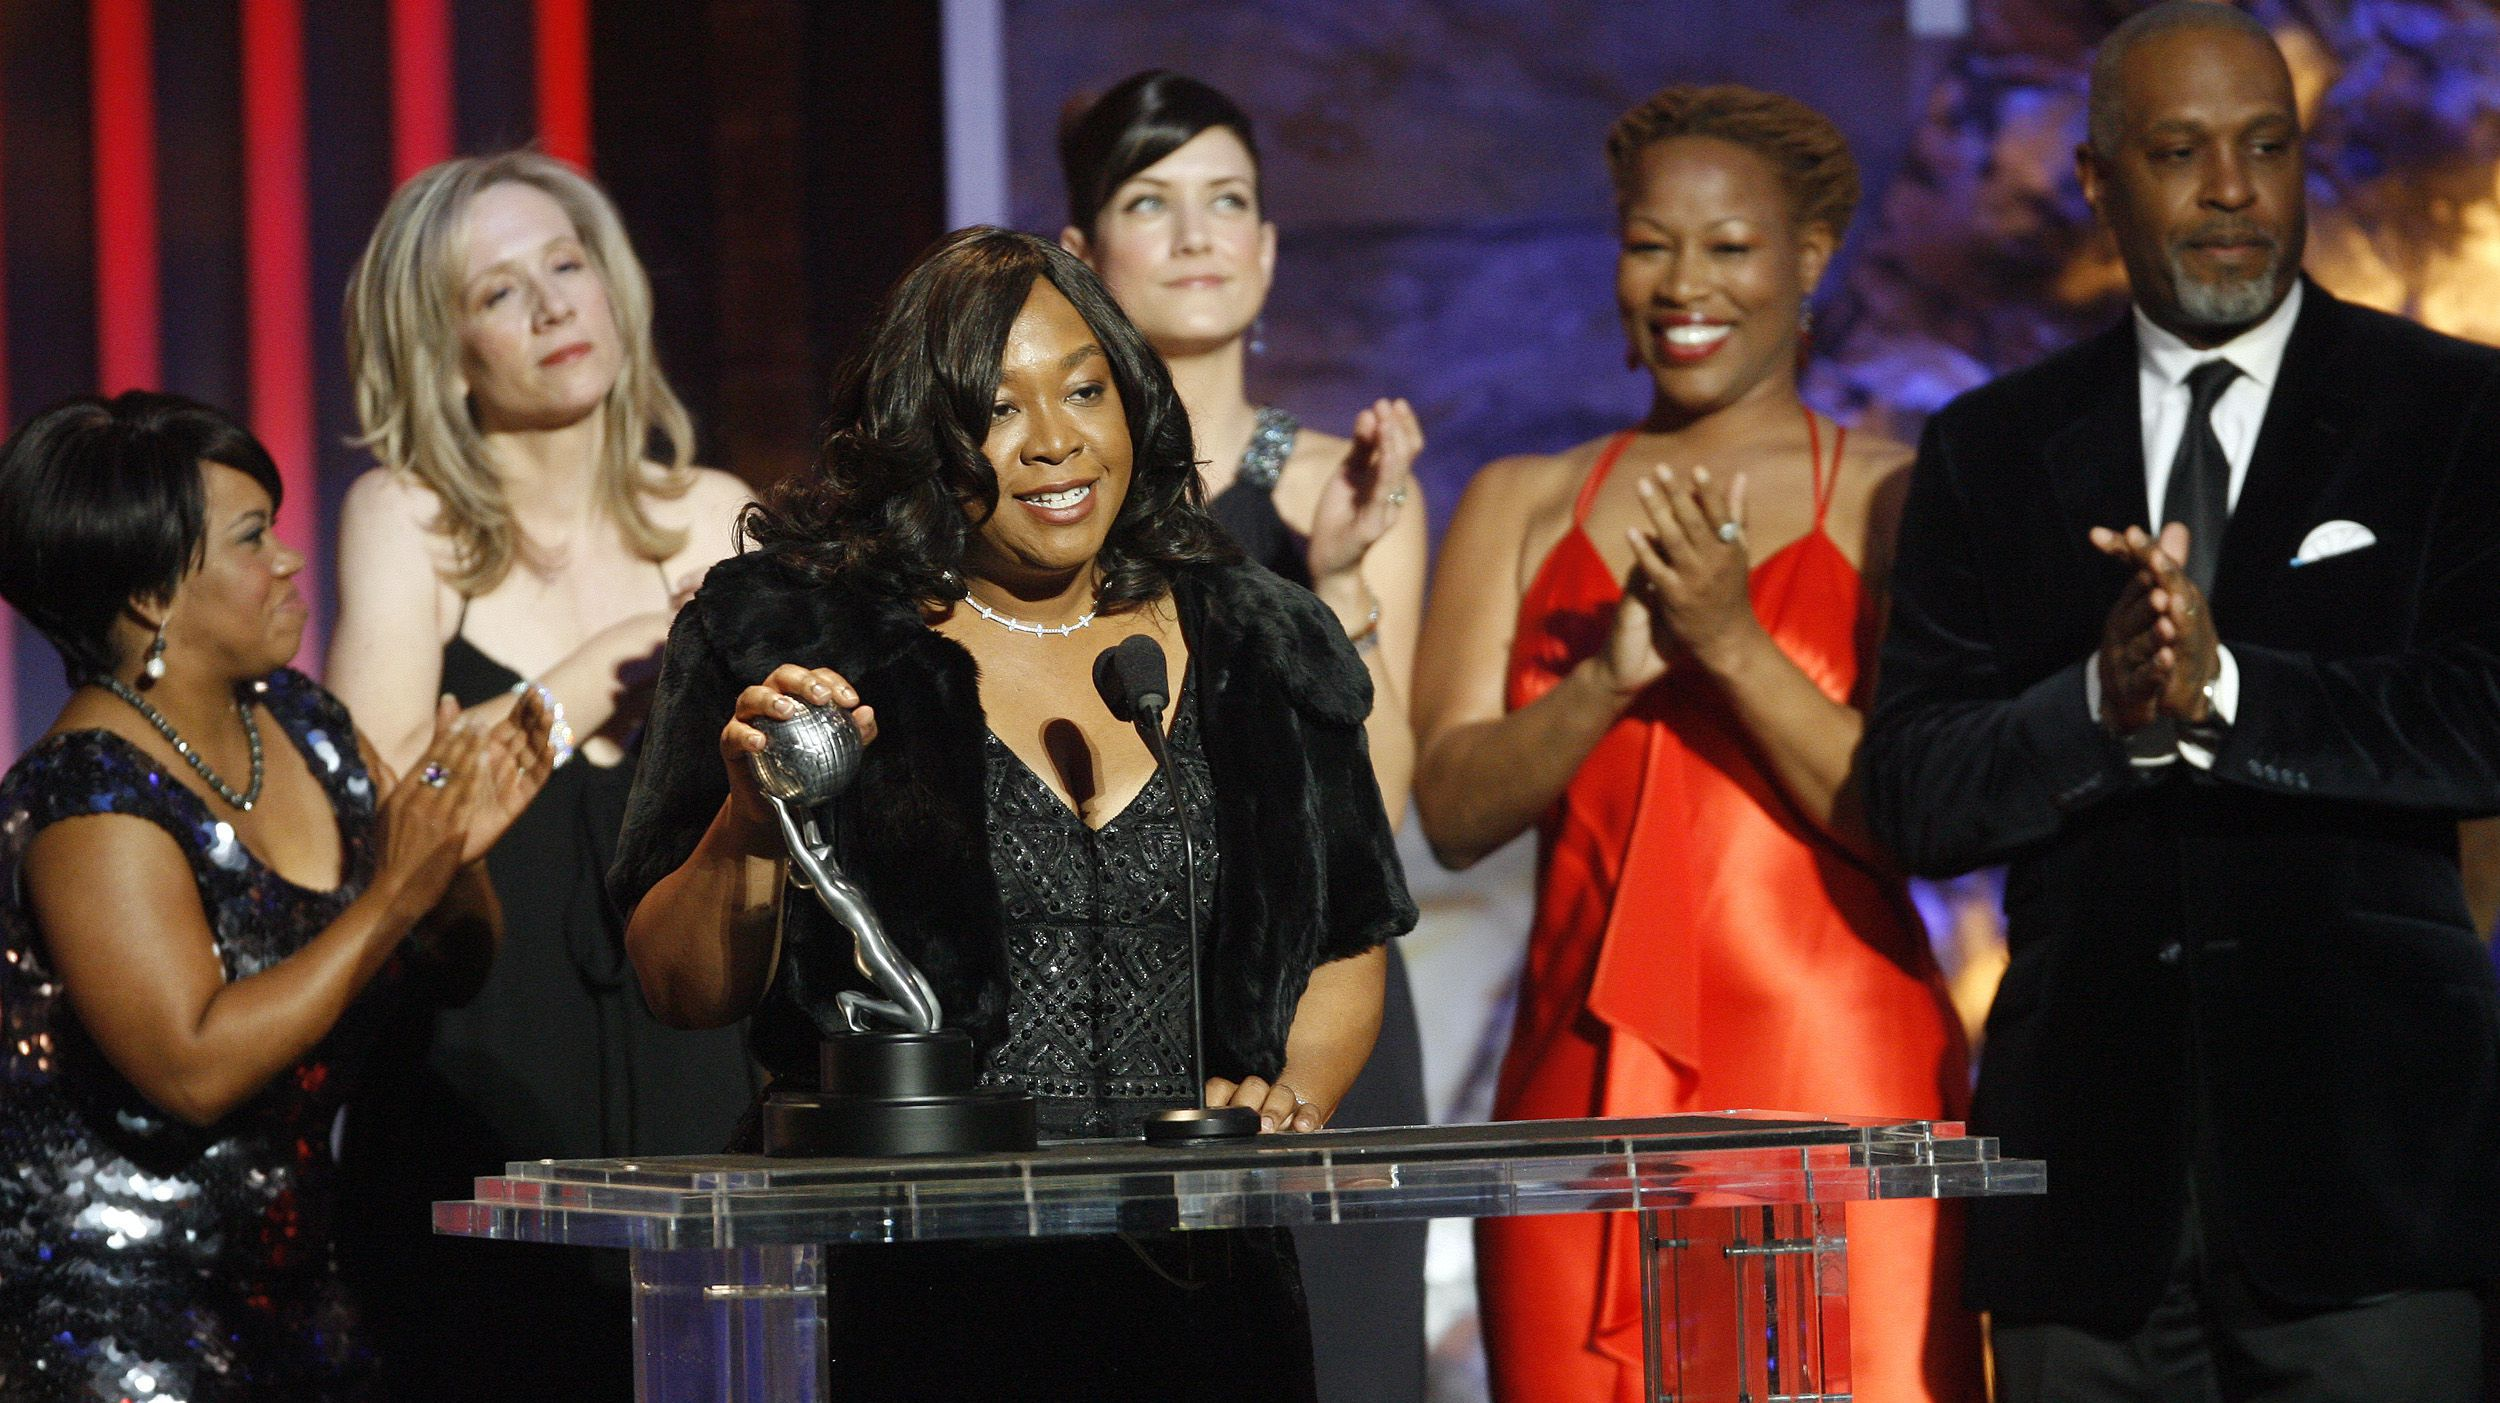 """Writer and producer Shonda Rhimes (C) accepts the Image Award for outstanding drama series for """"Grey's Anatomy"""" at the 39th Annual NAACP Image Awards at the Shrine auditorium in Los Angeles February 14, 2008.  REUTERS/Mario Anzuoni   (UNITED STATES) - RTR1X43B"""